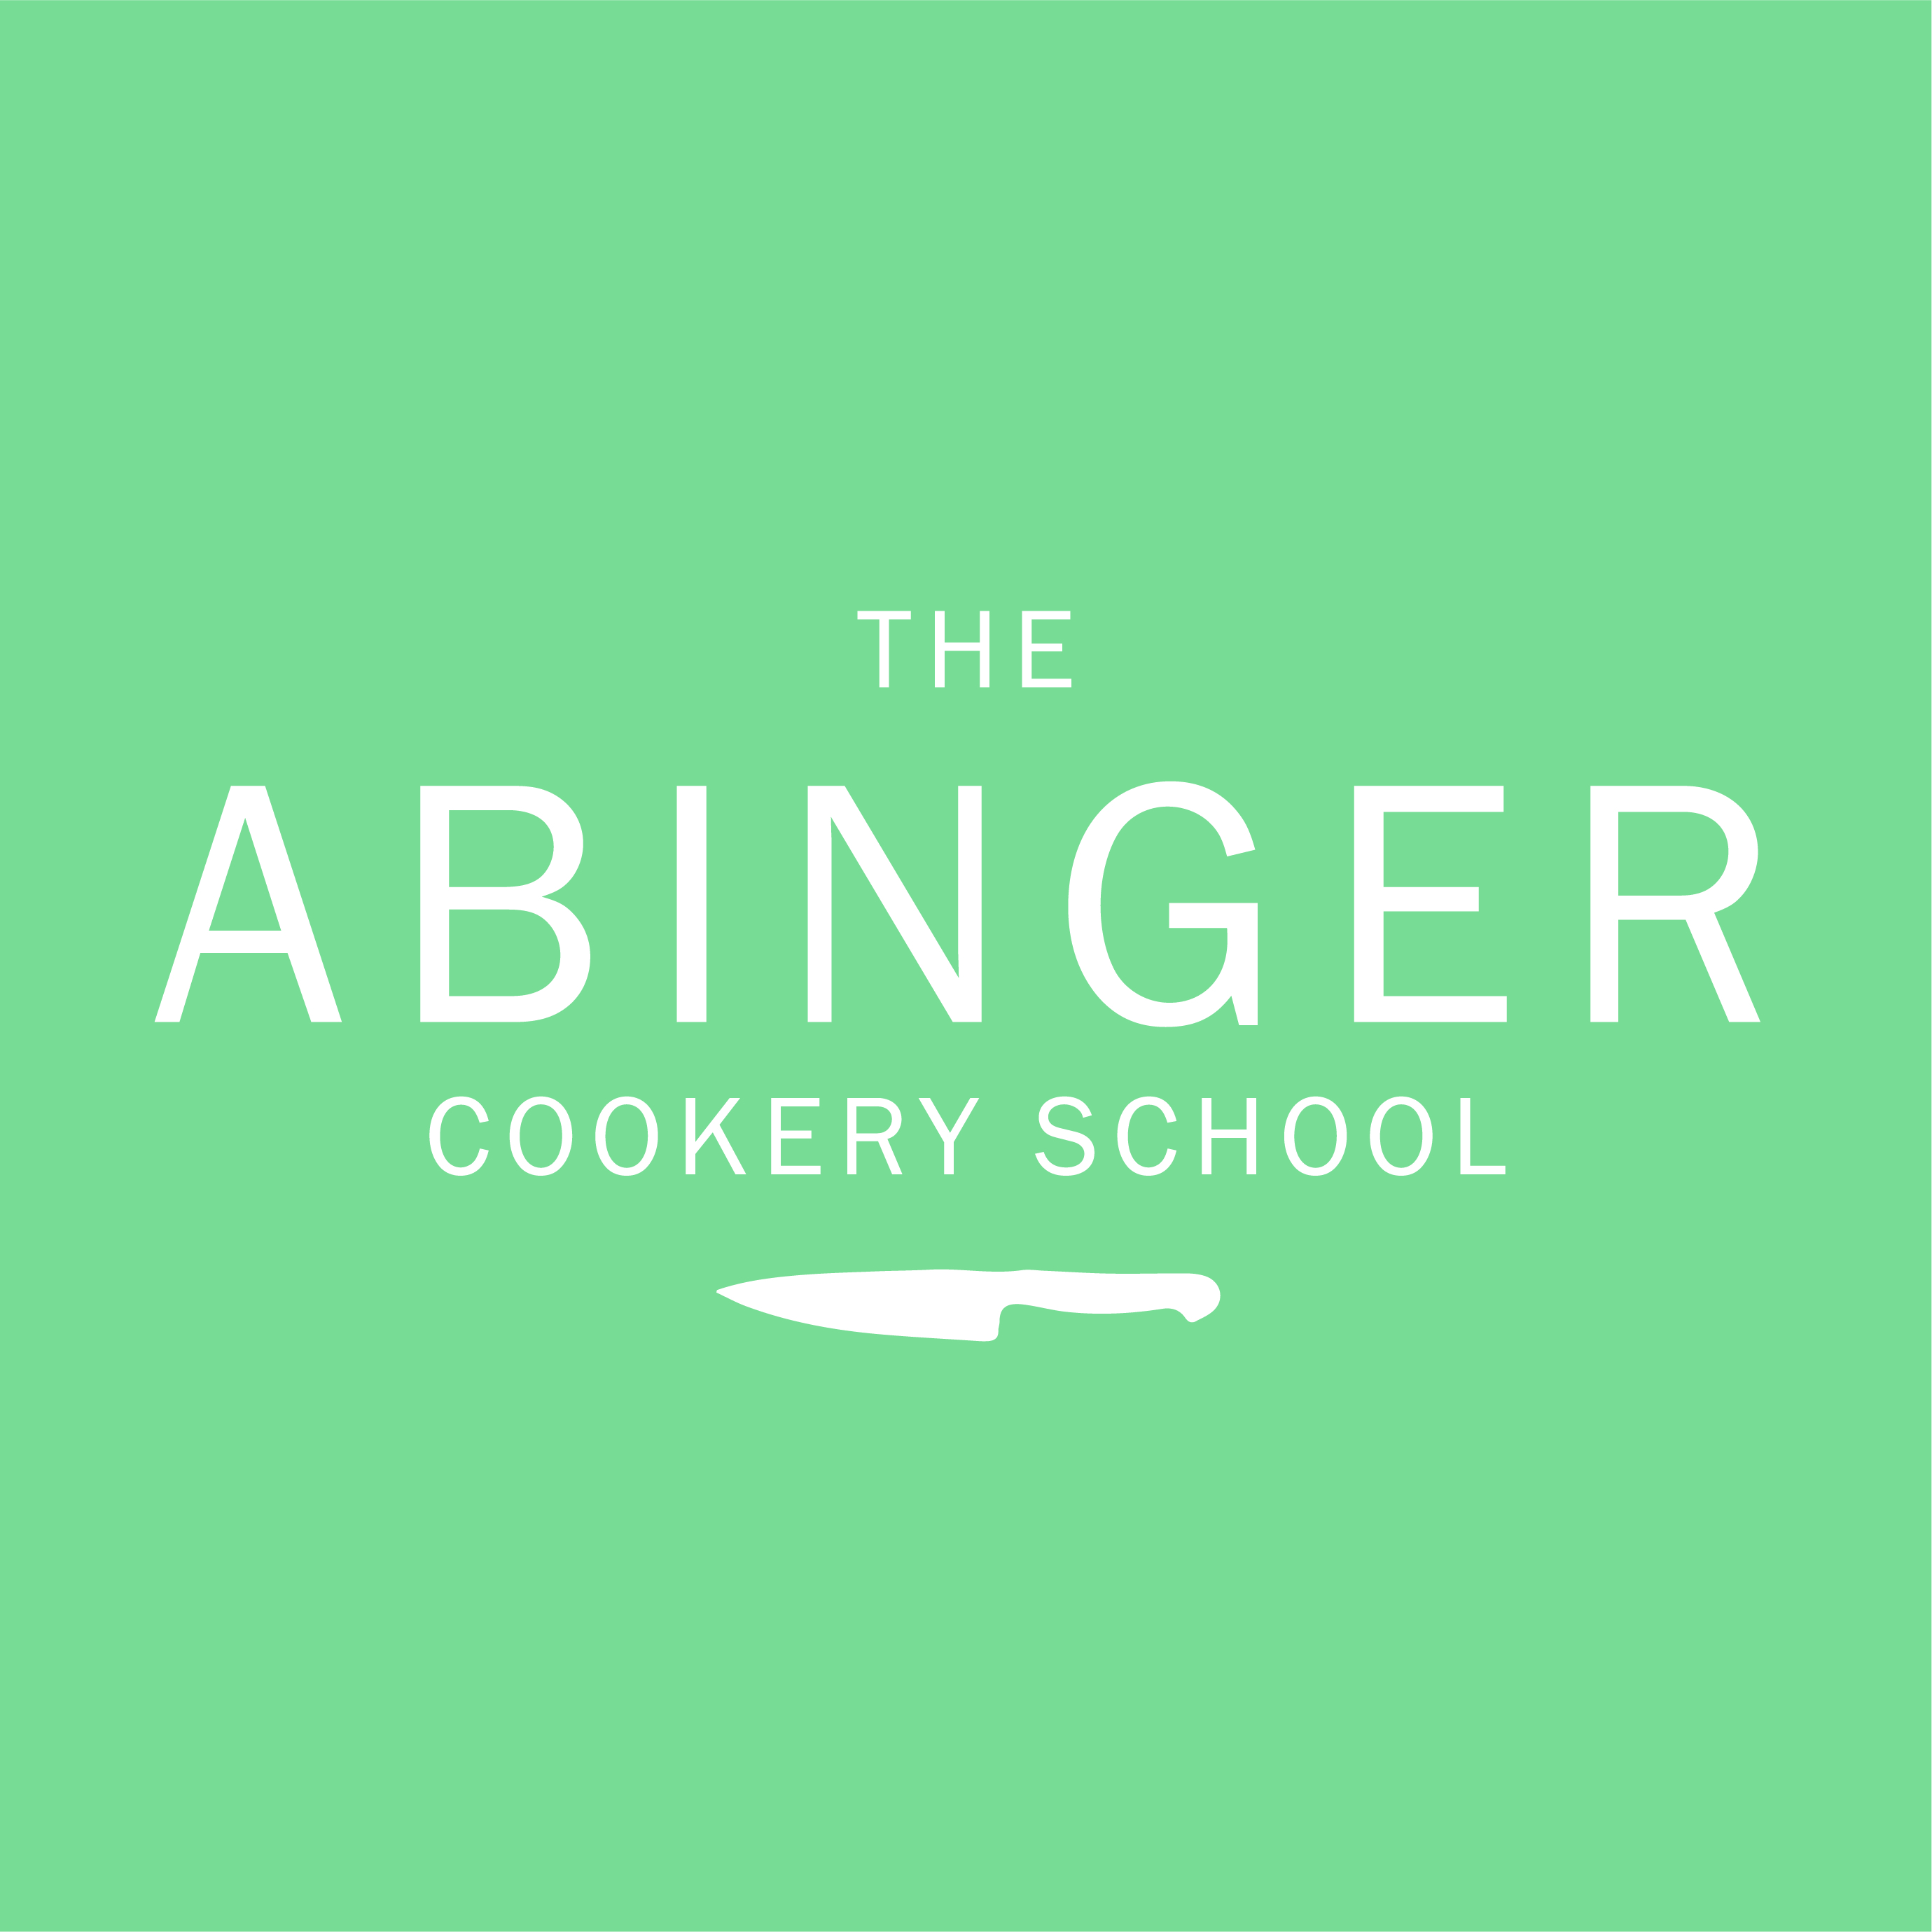 The Abinger Cookery School in